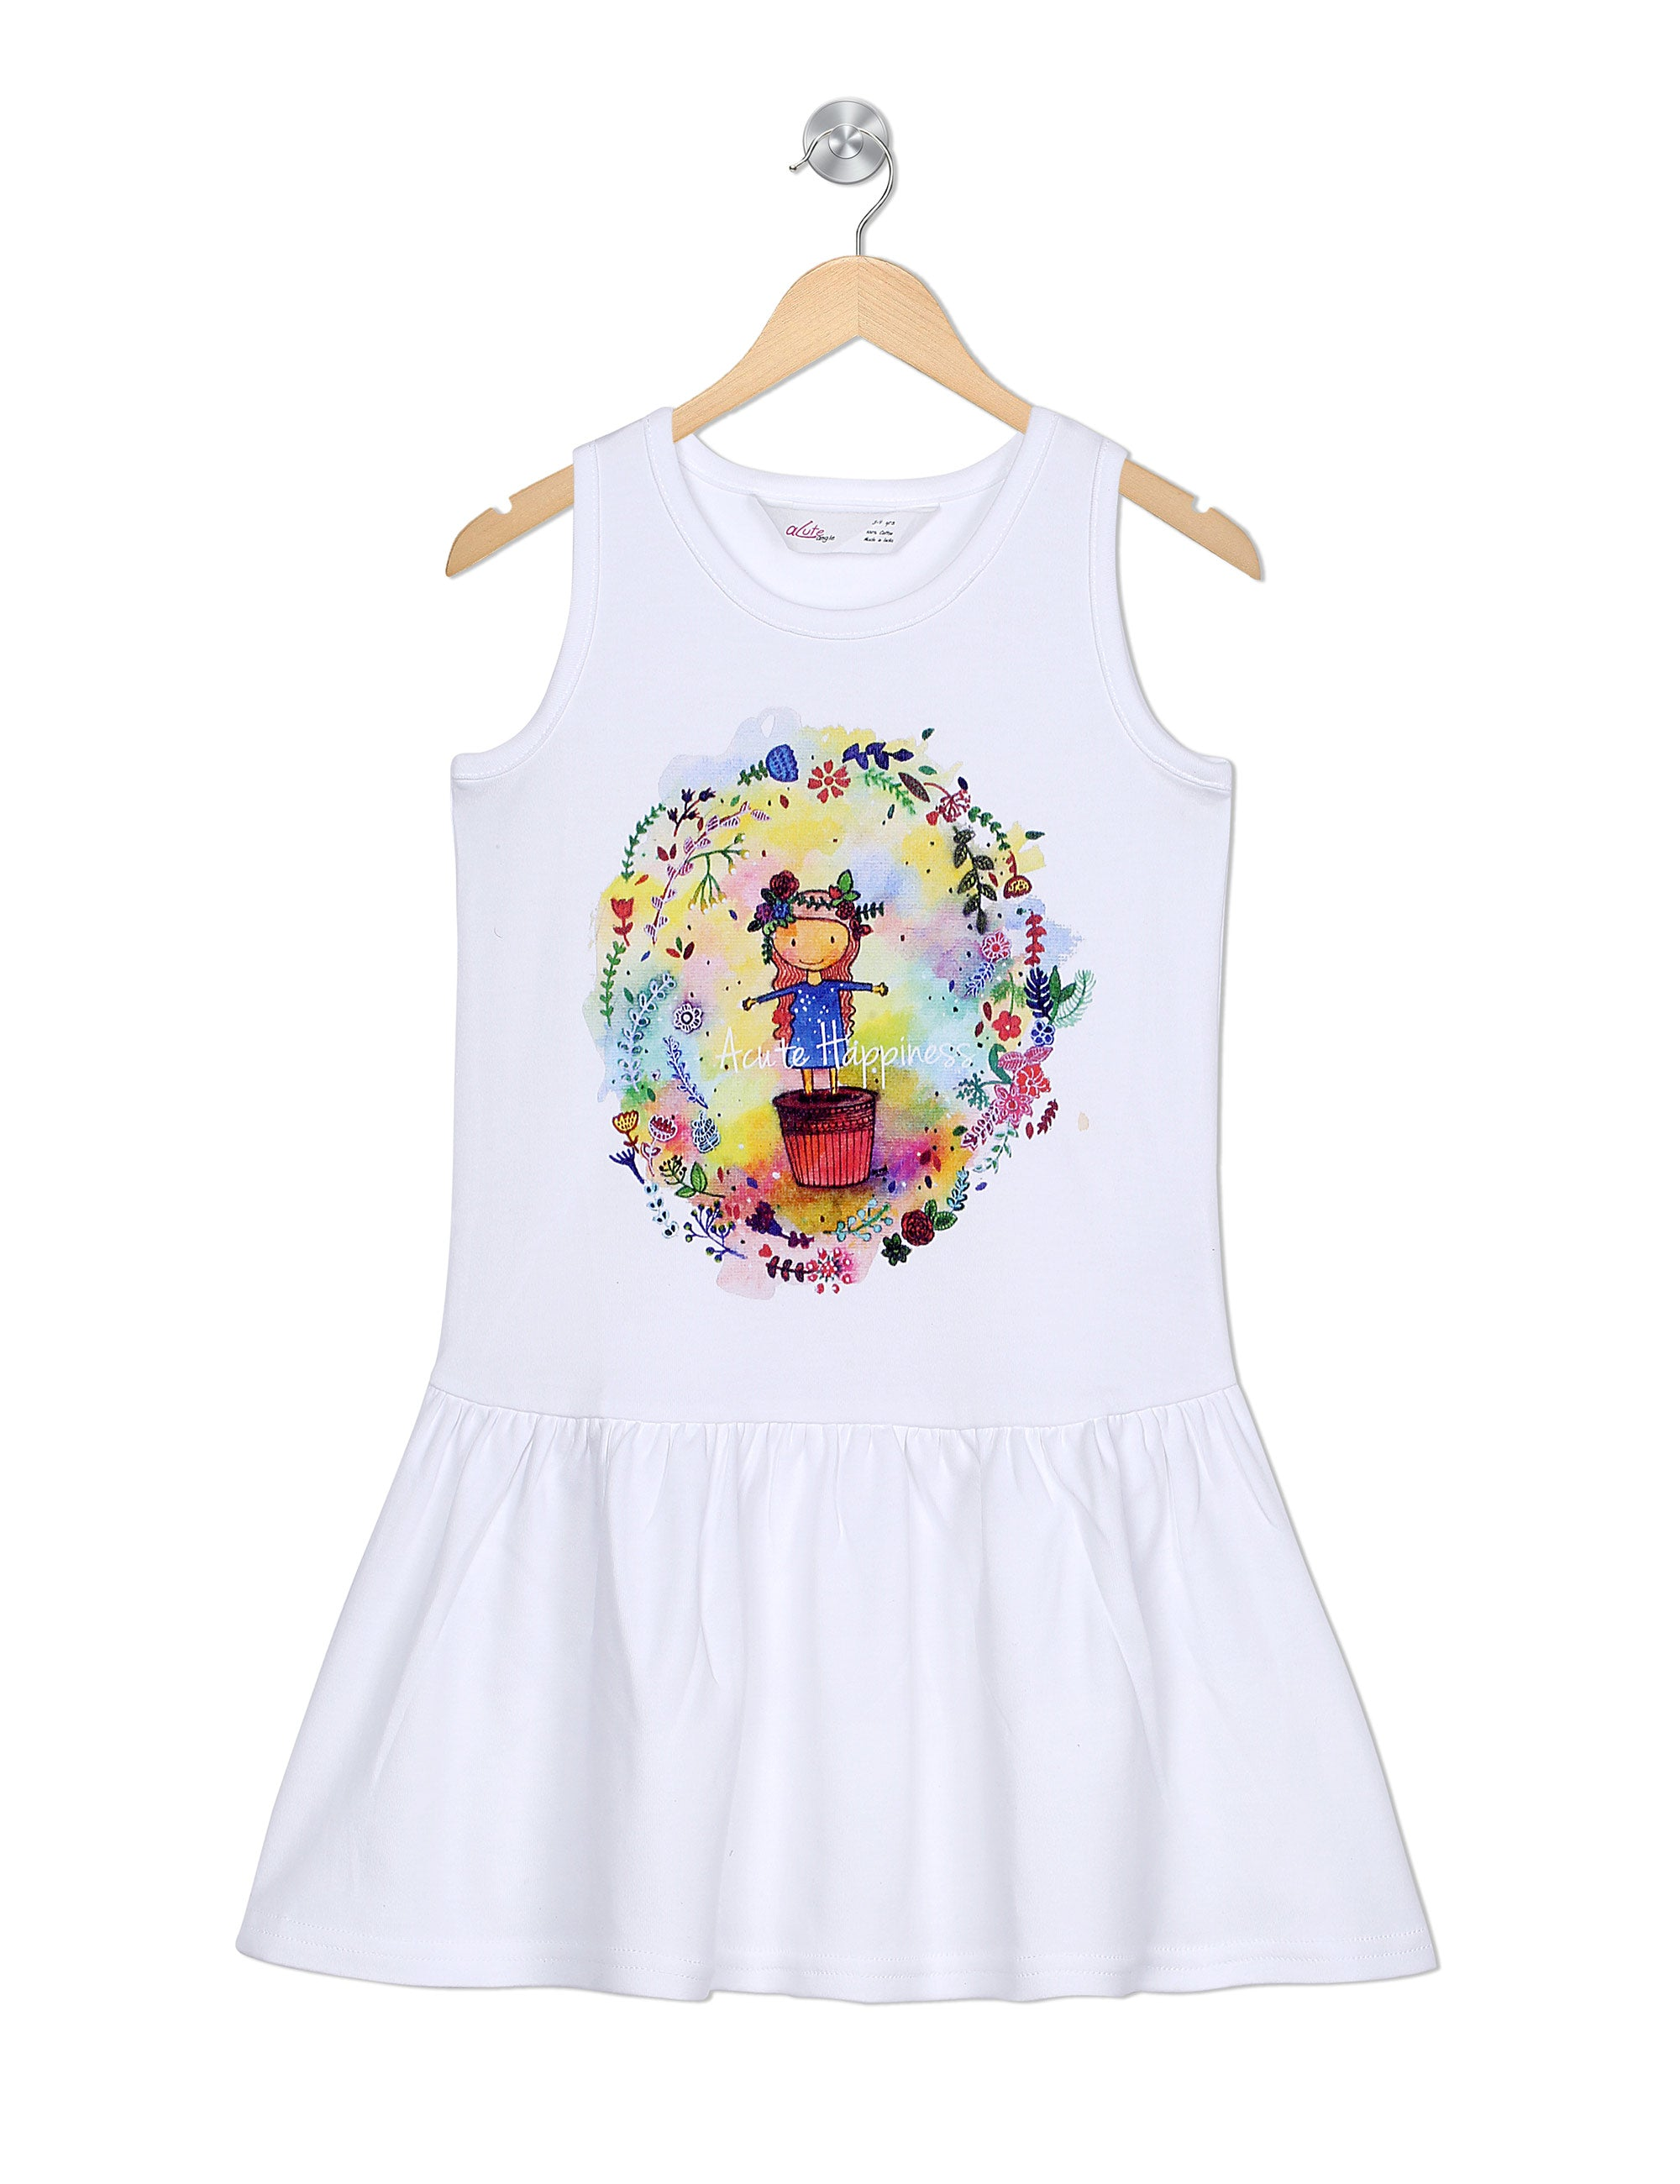 Happiness Frock In White Colour for Girls